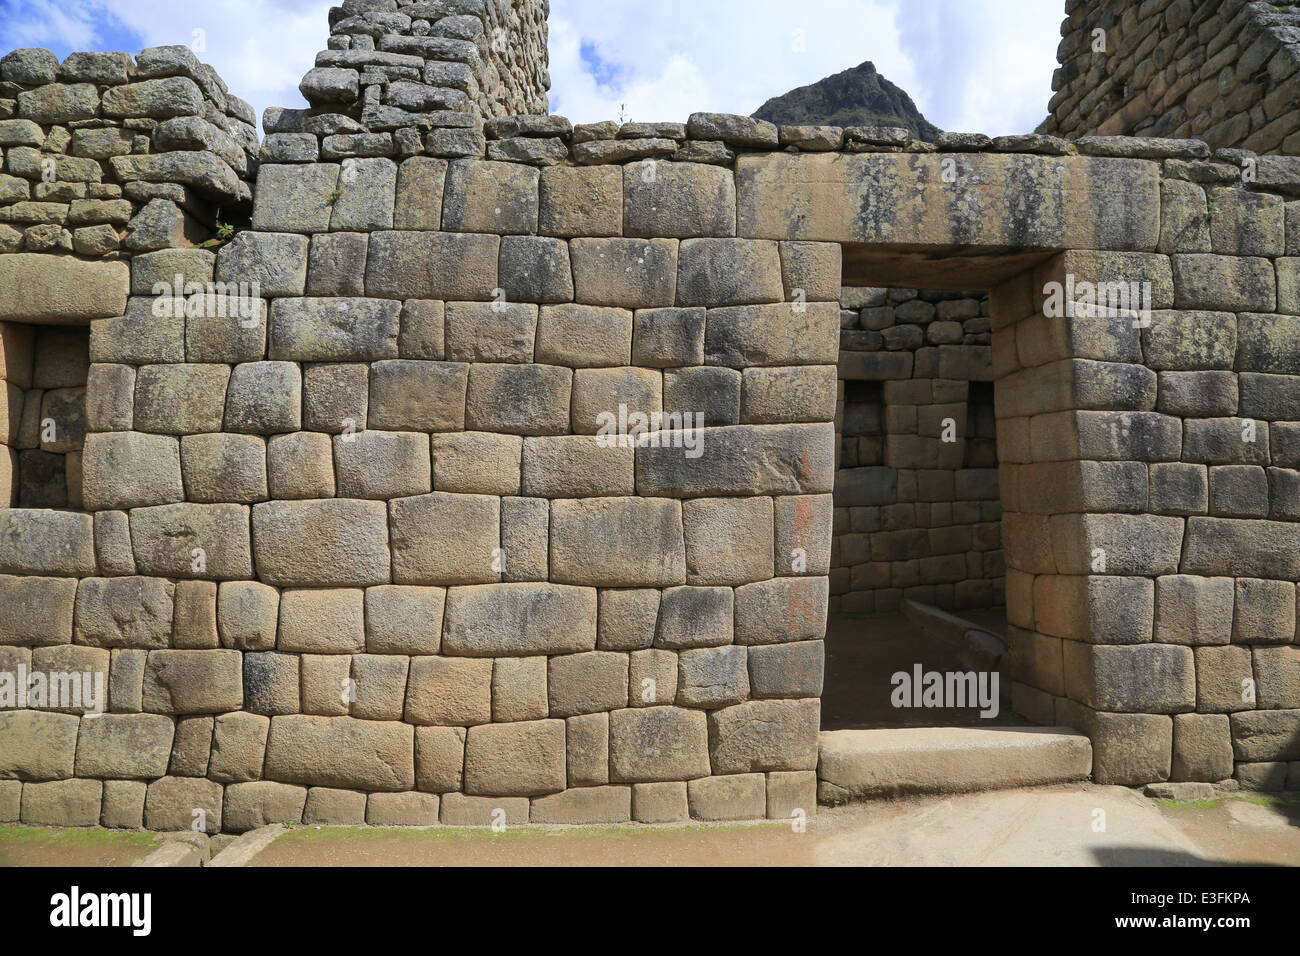 The trapezoidal arch stonework on the buildings at Machu Picchu, Cusco, Peru. - Stock Image